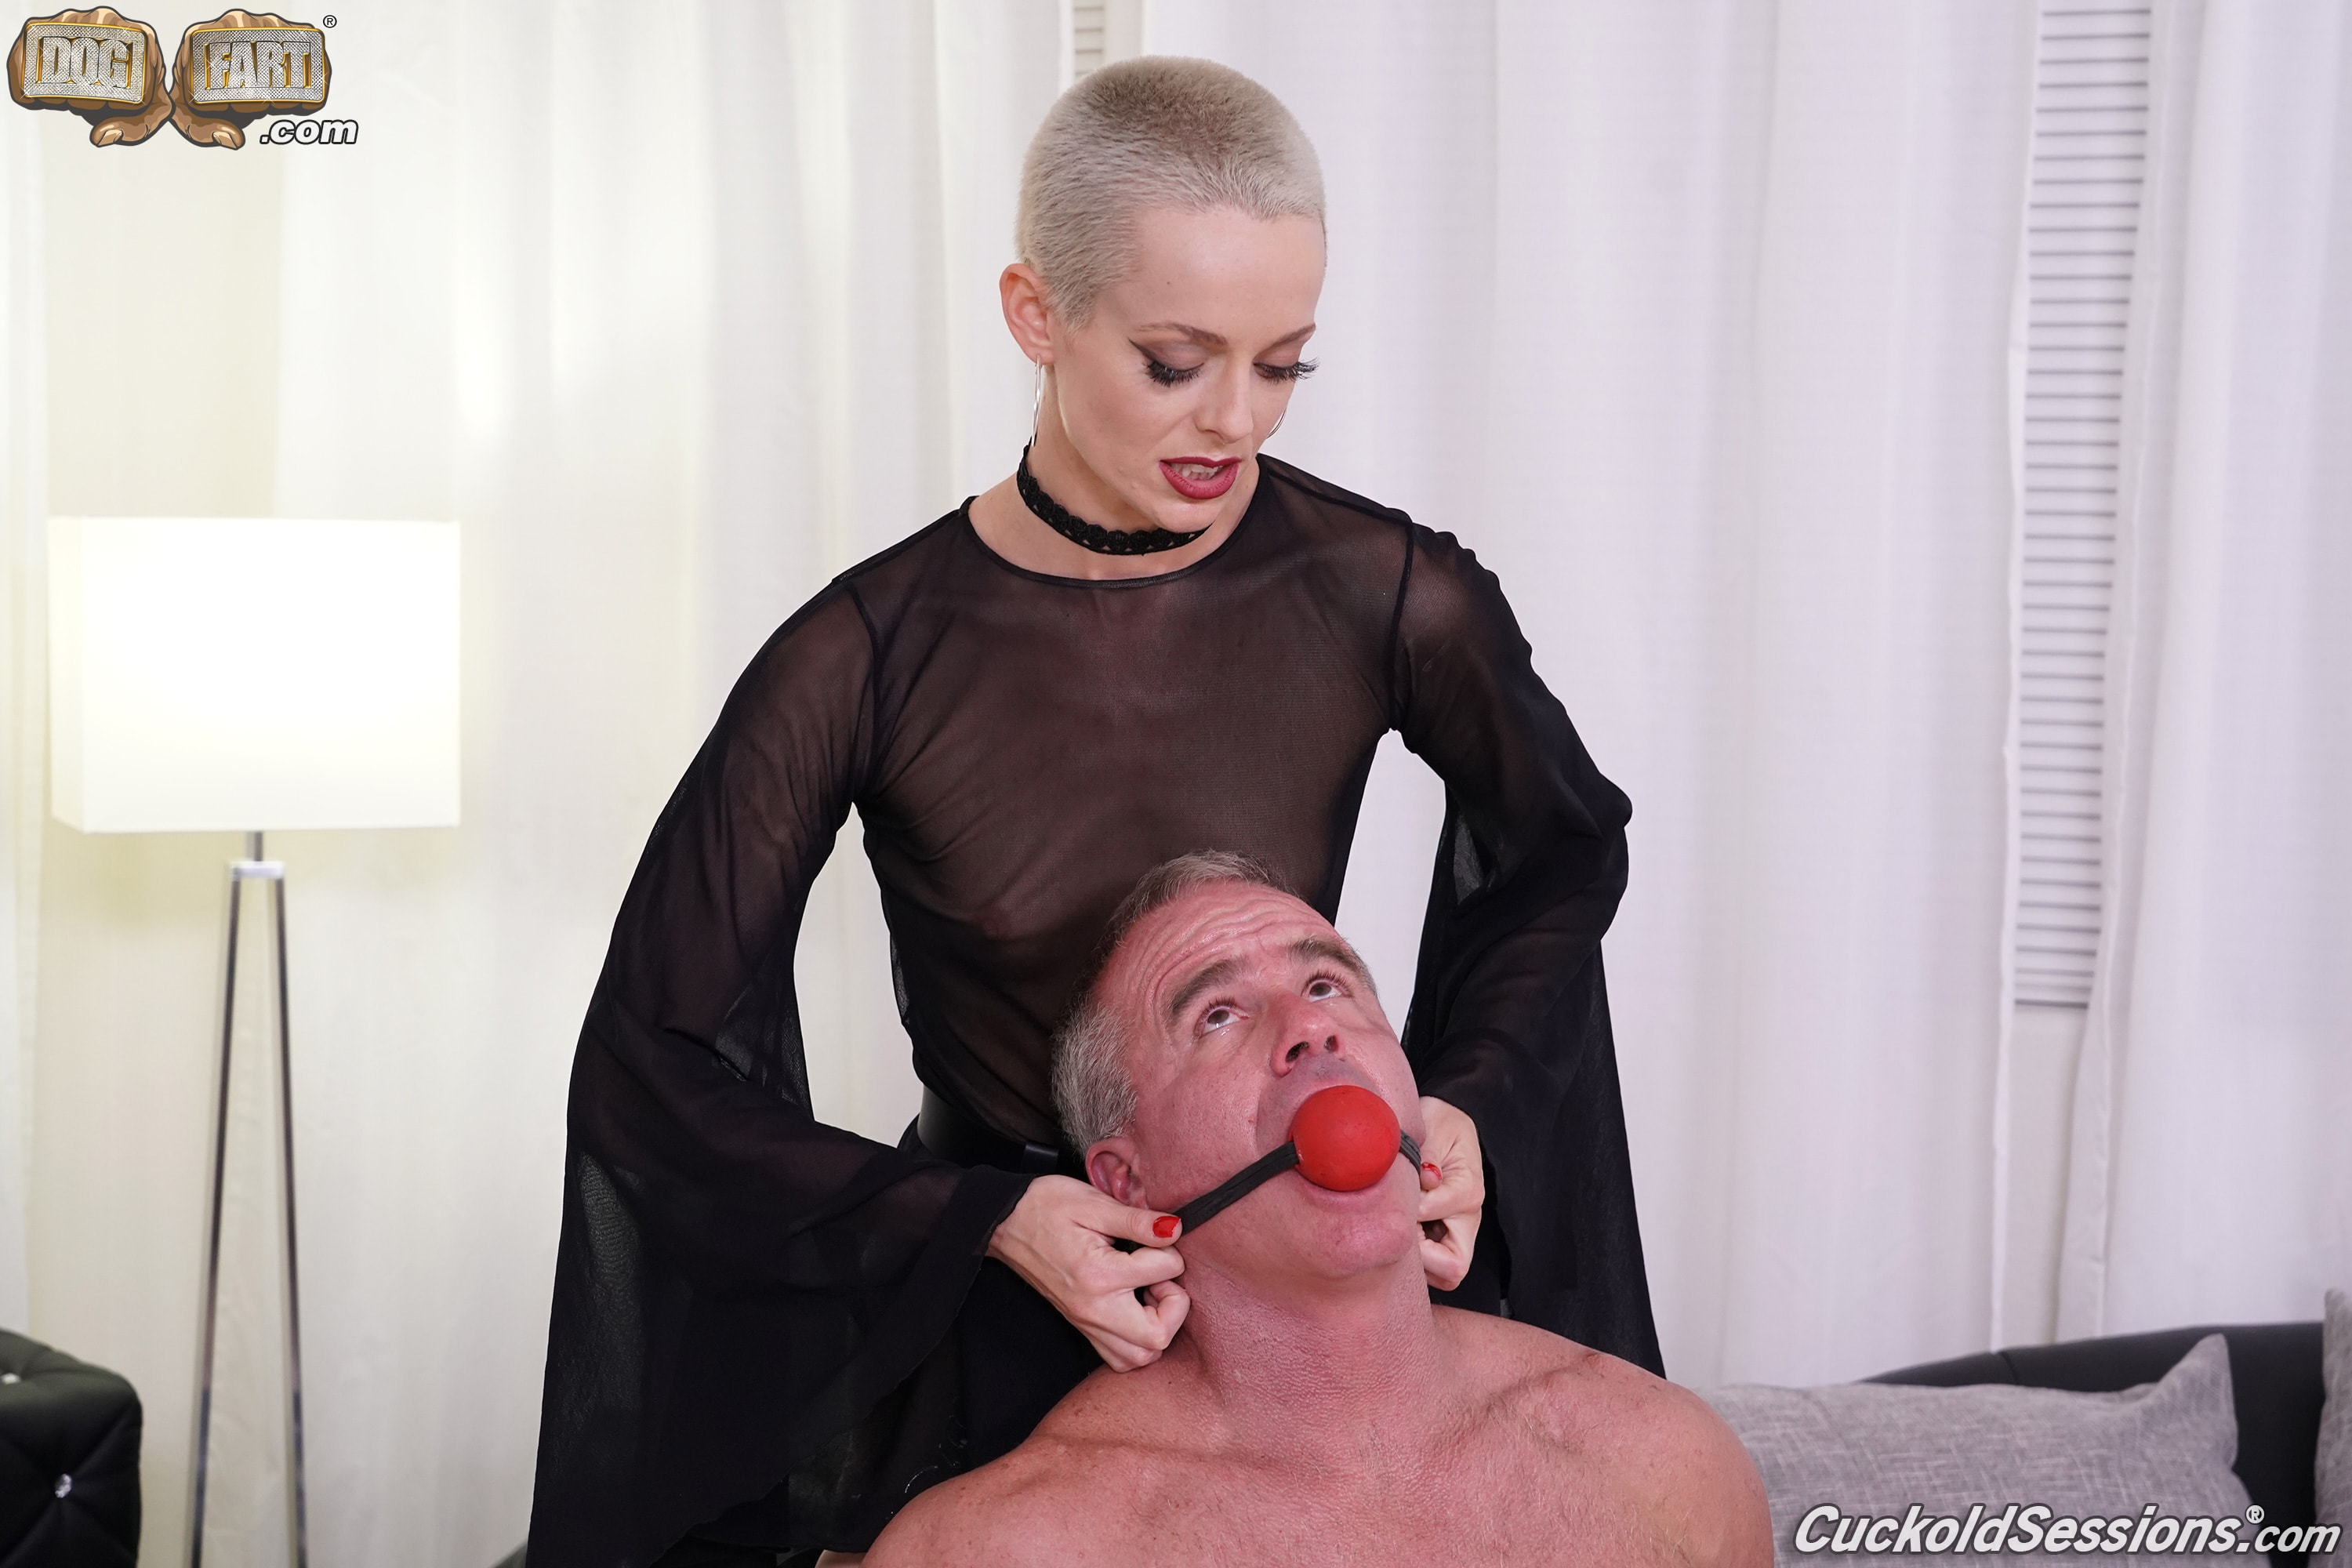 Dogfart '- Cuckold Sessions' starring Sidra Sage (Photo 10)